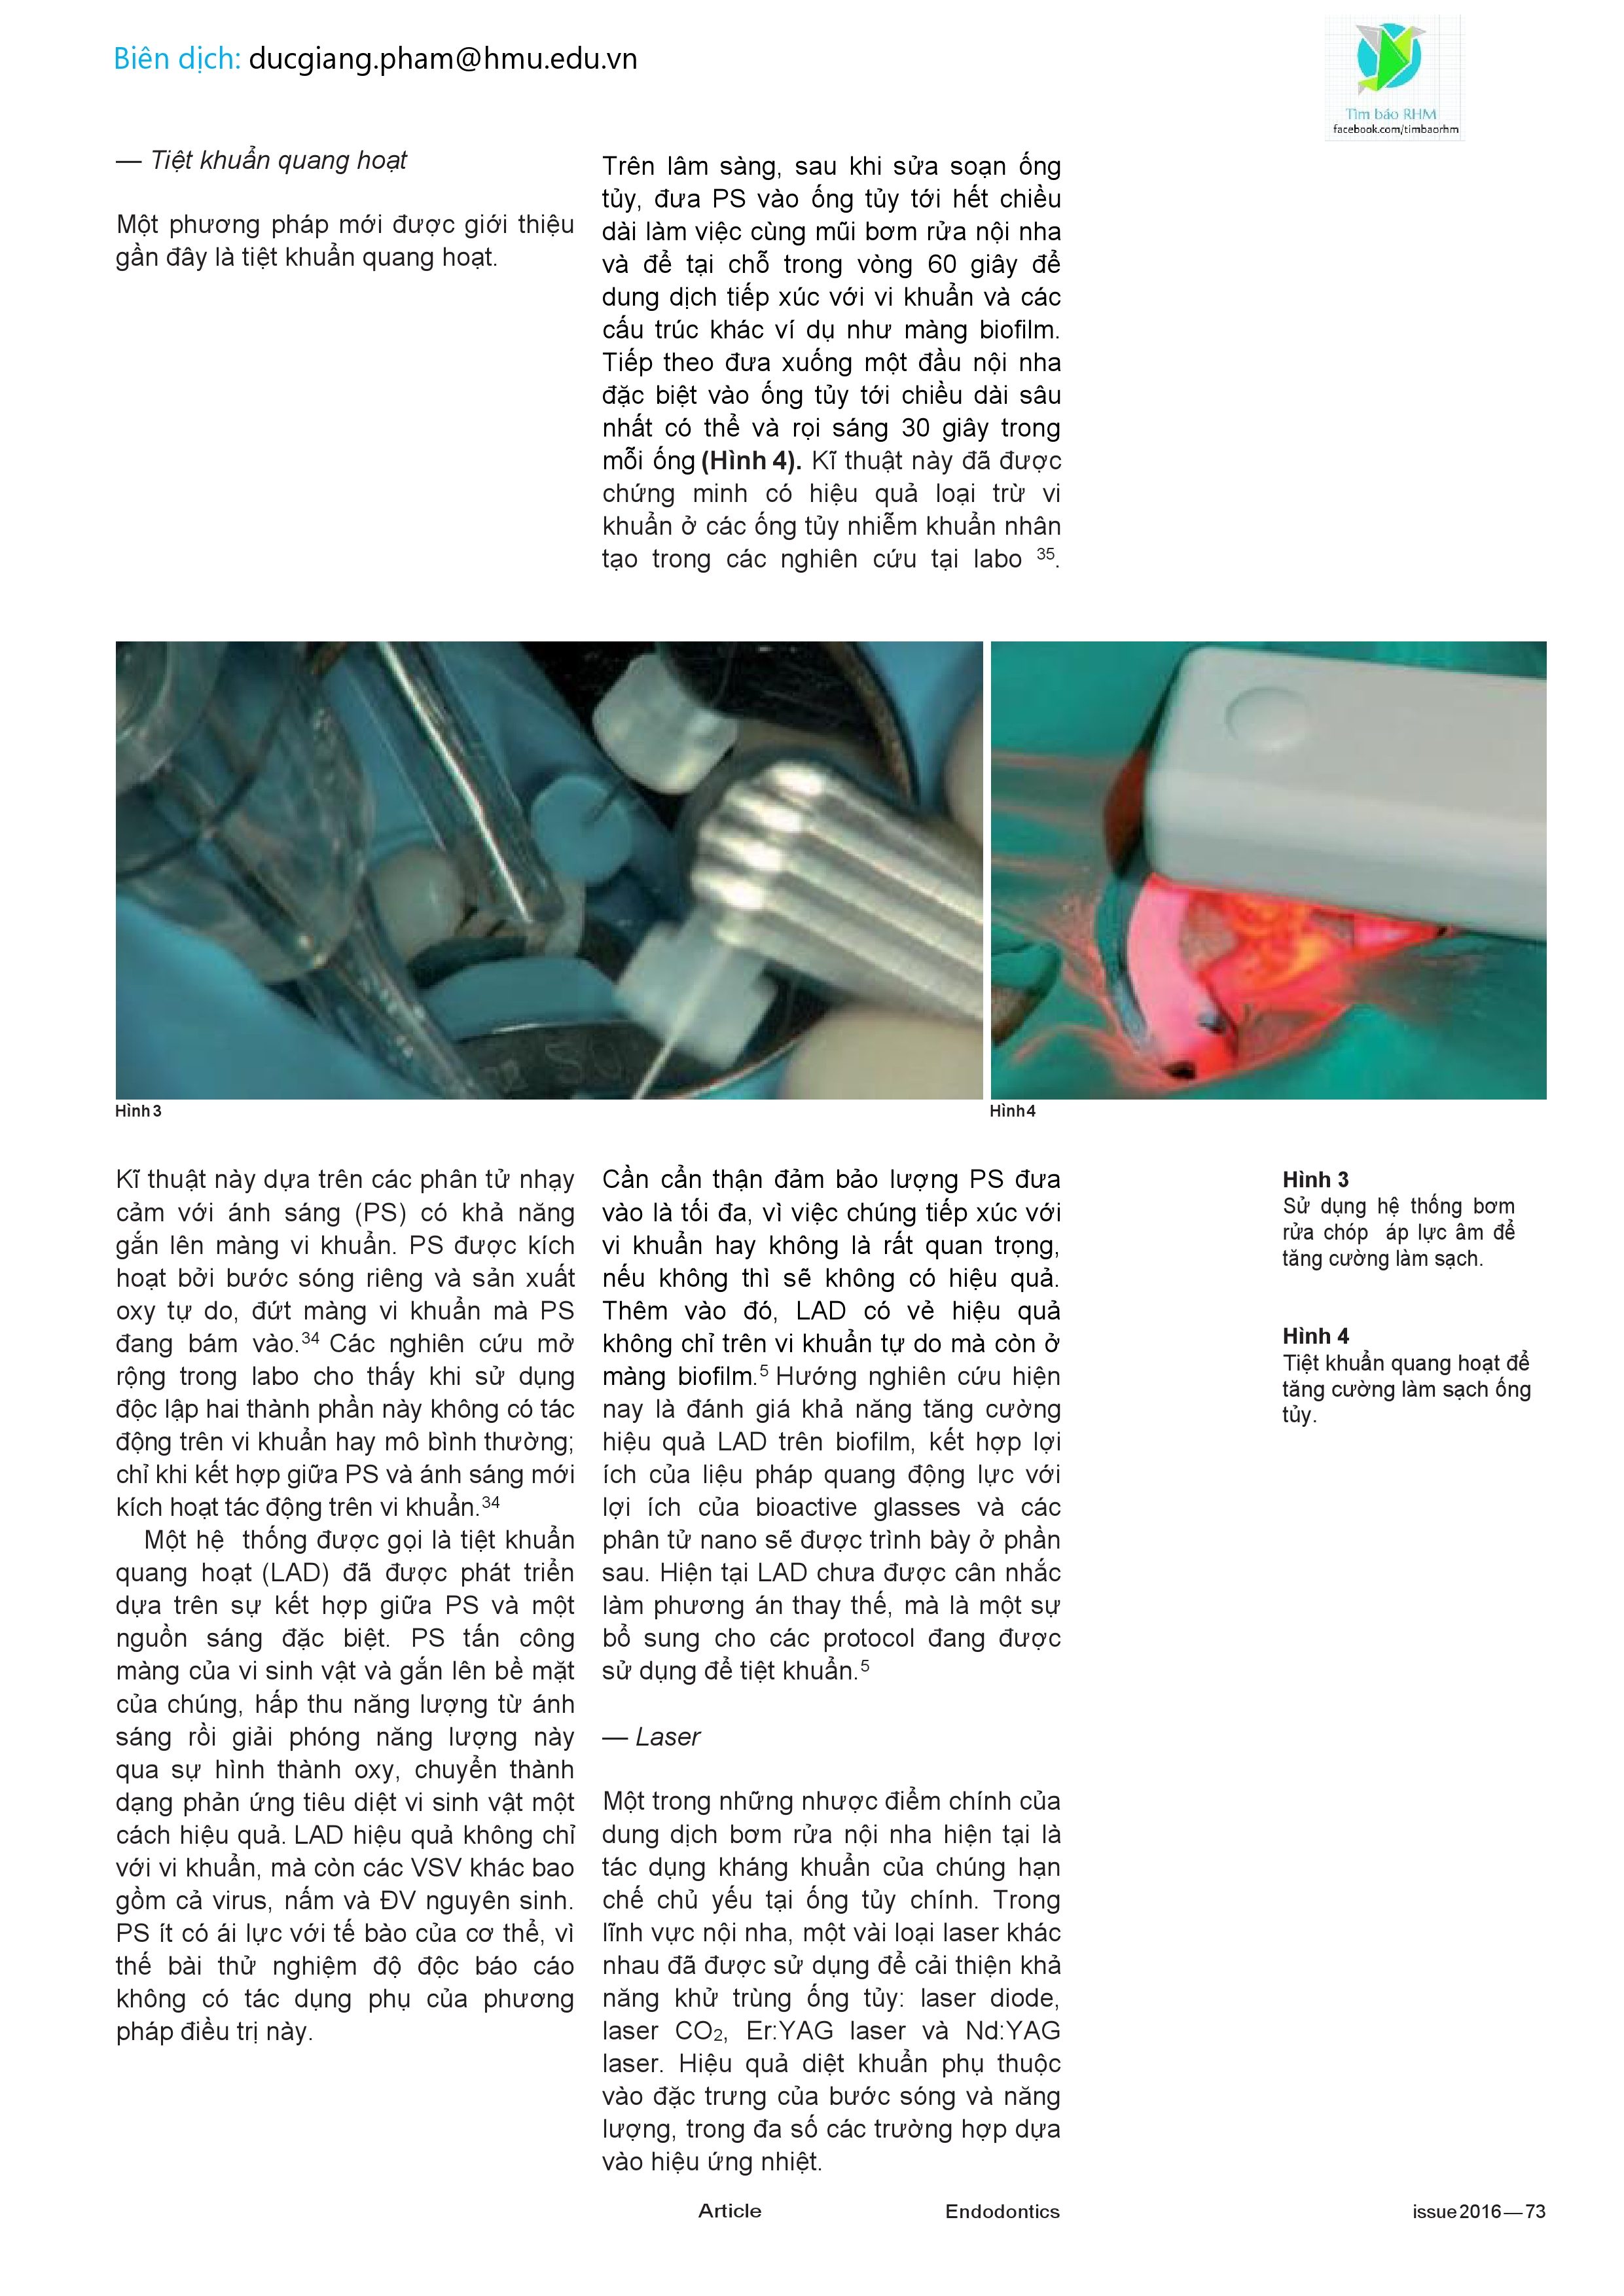 NEW TECHNOLOGIES — to improve root canal disinfection - vn0004